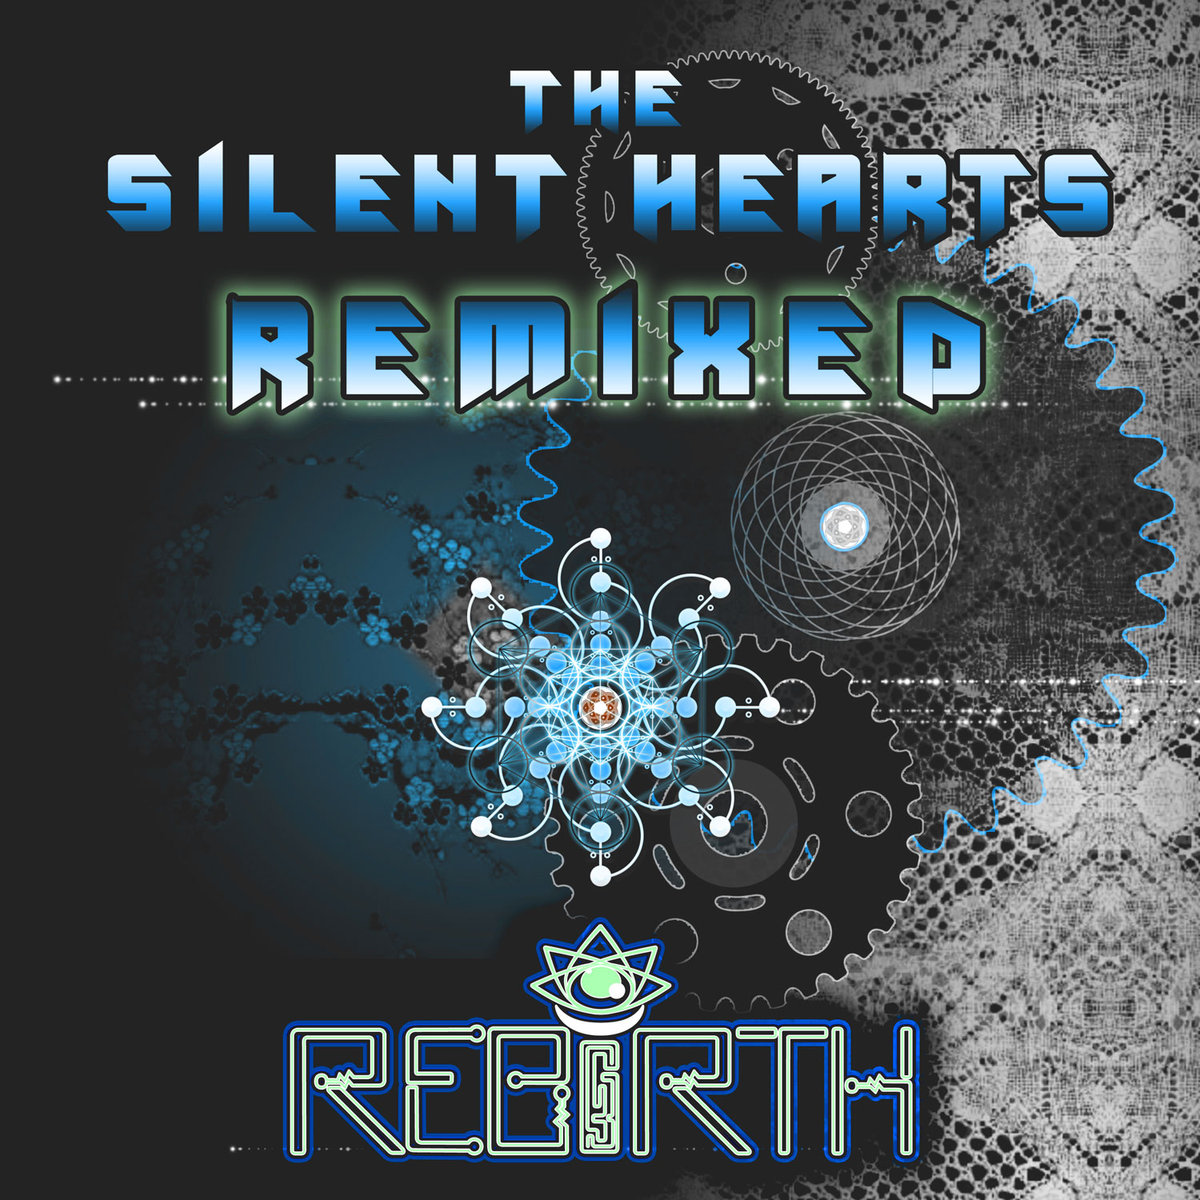 Rebirth - Huasca (Squama Remix) @ 'The Silent Hearts: Remixed' album (bass, electronic)